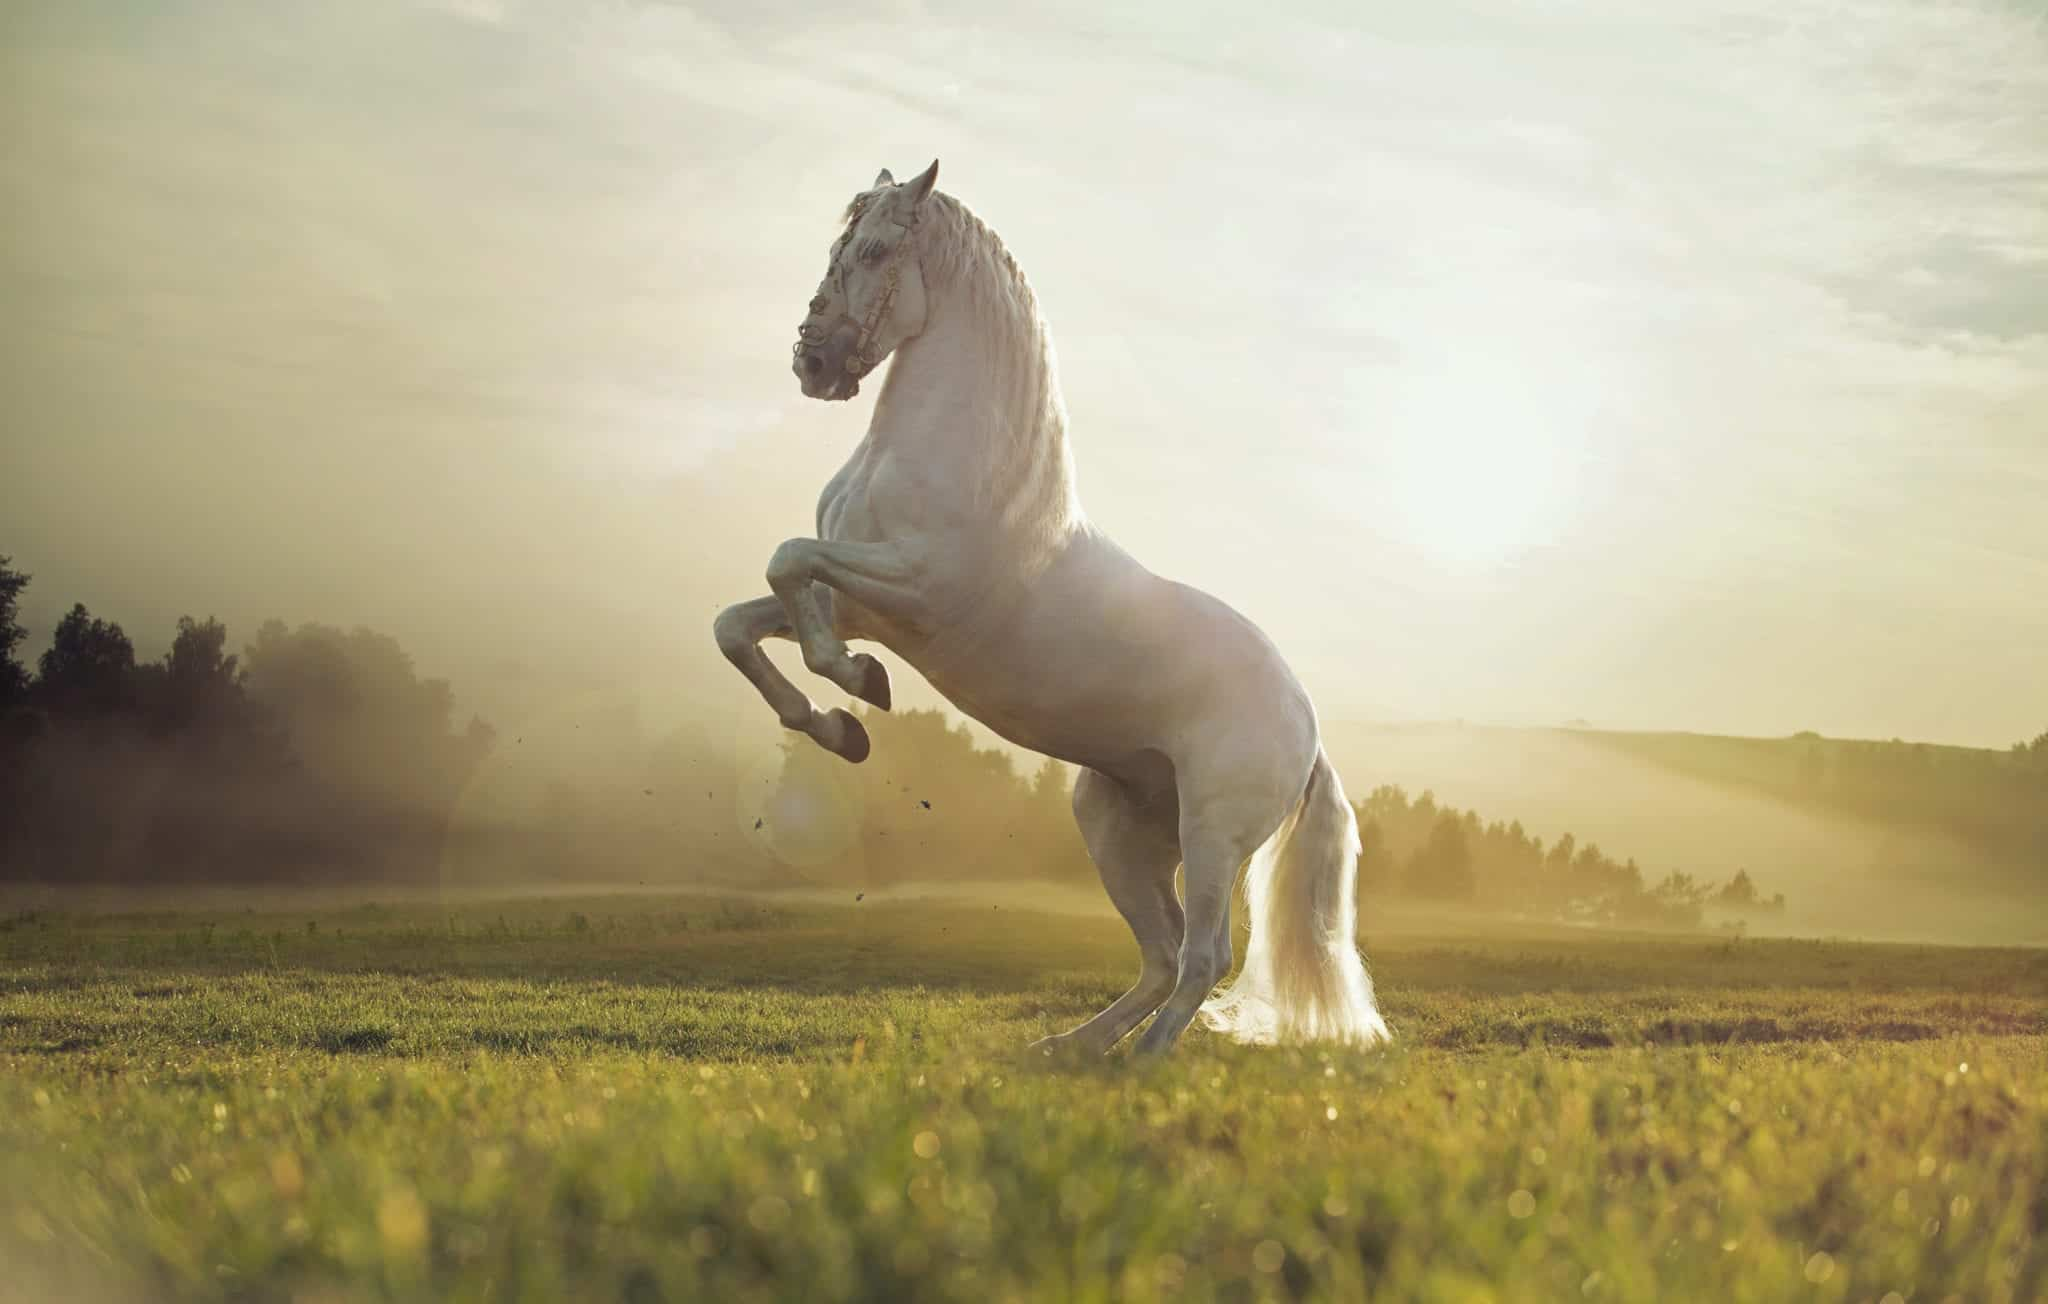 Majestic photo of strong royal white horse